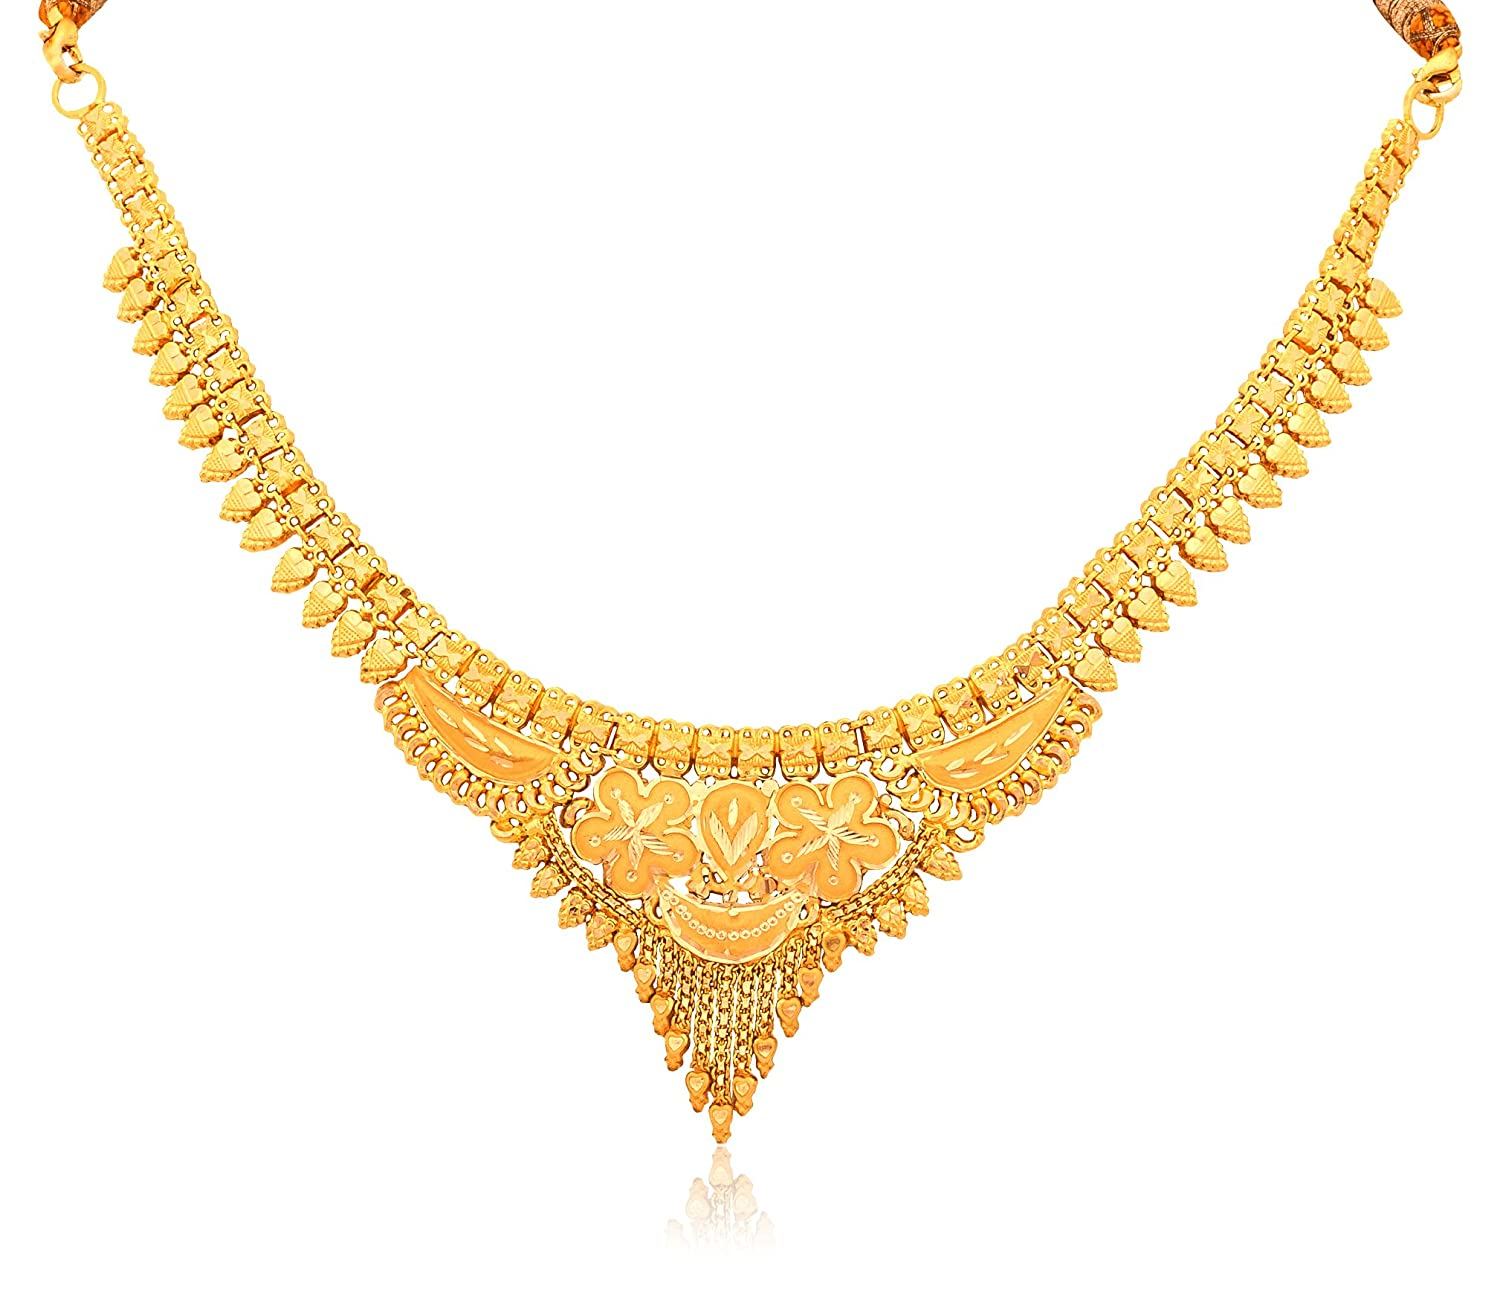 gold necklace cable women men chain fashion wholesale item pure gp wide color s chains jewelry